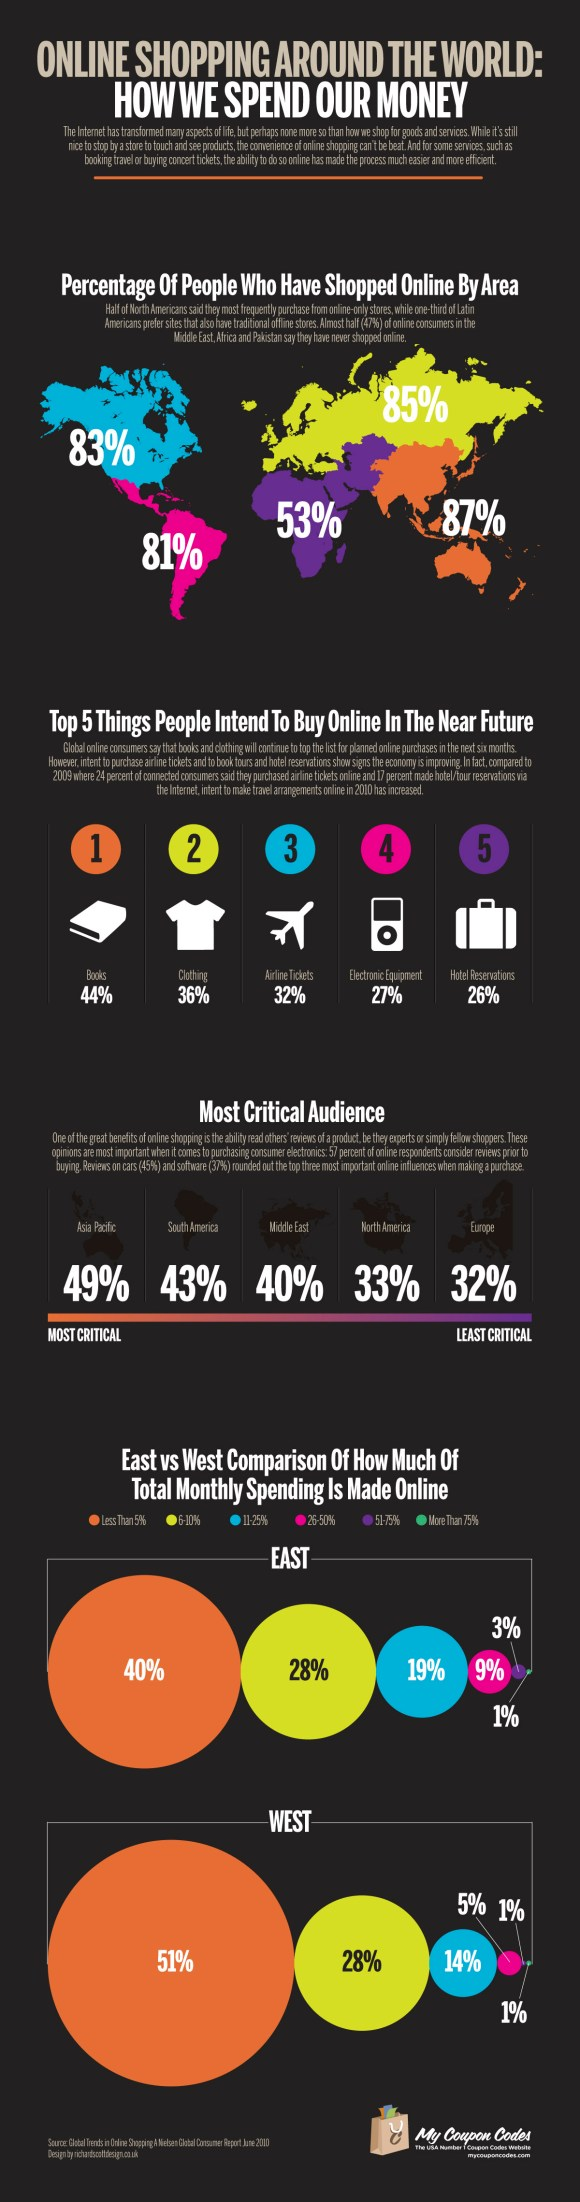 Online Shopping Around The World: How We Spend Our Money Online